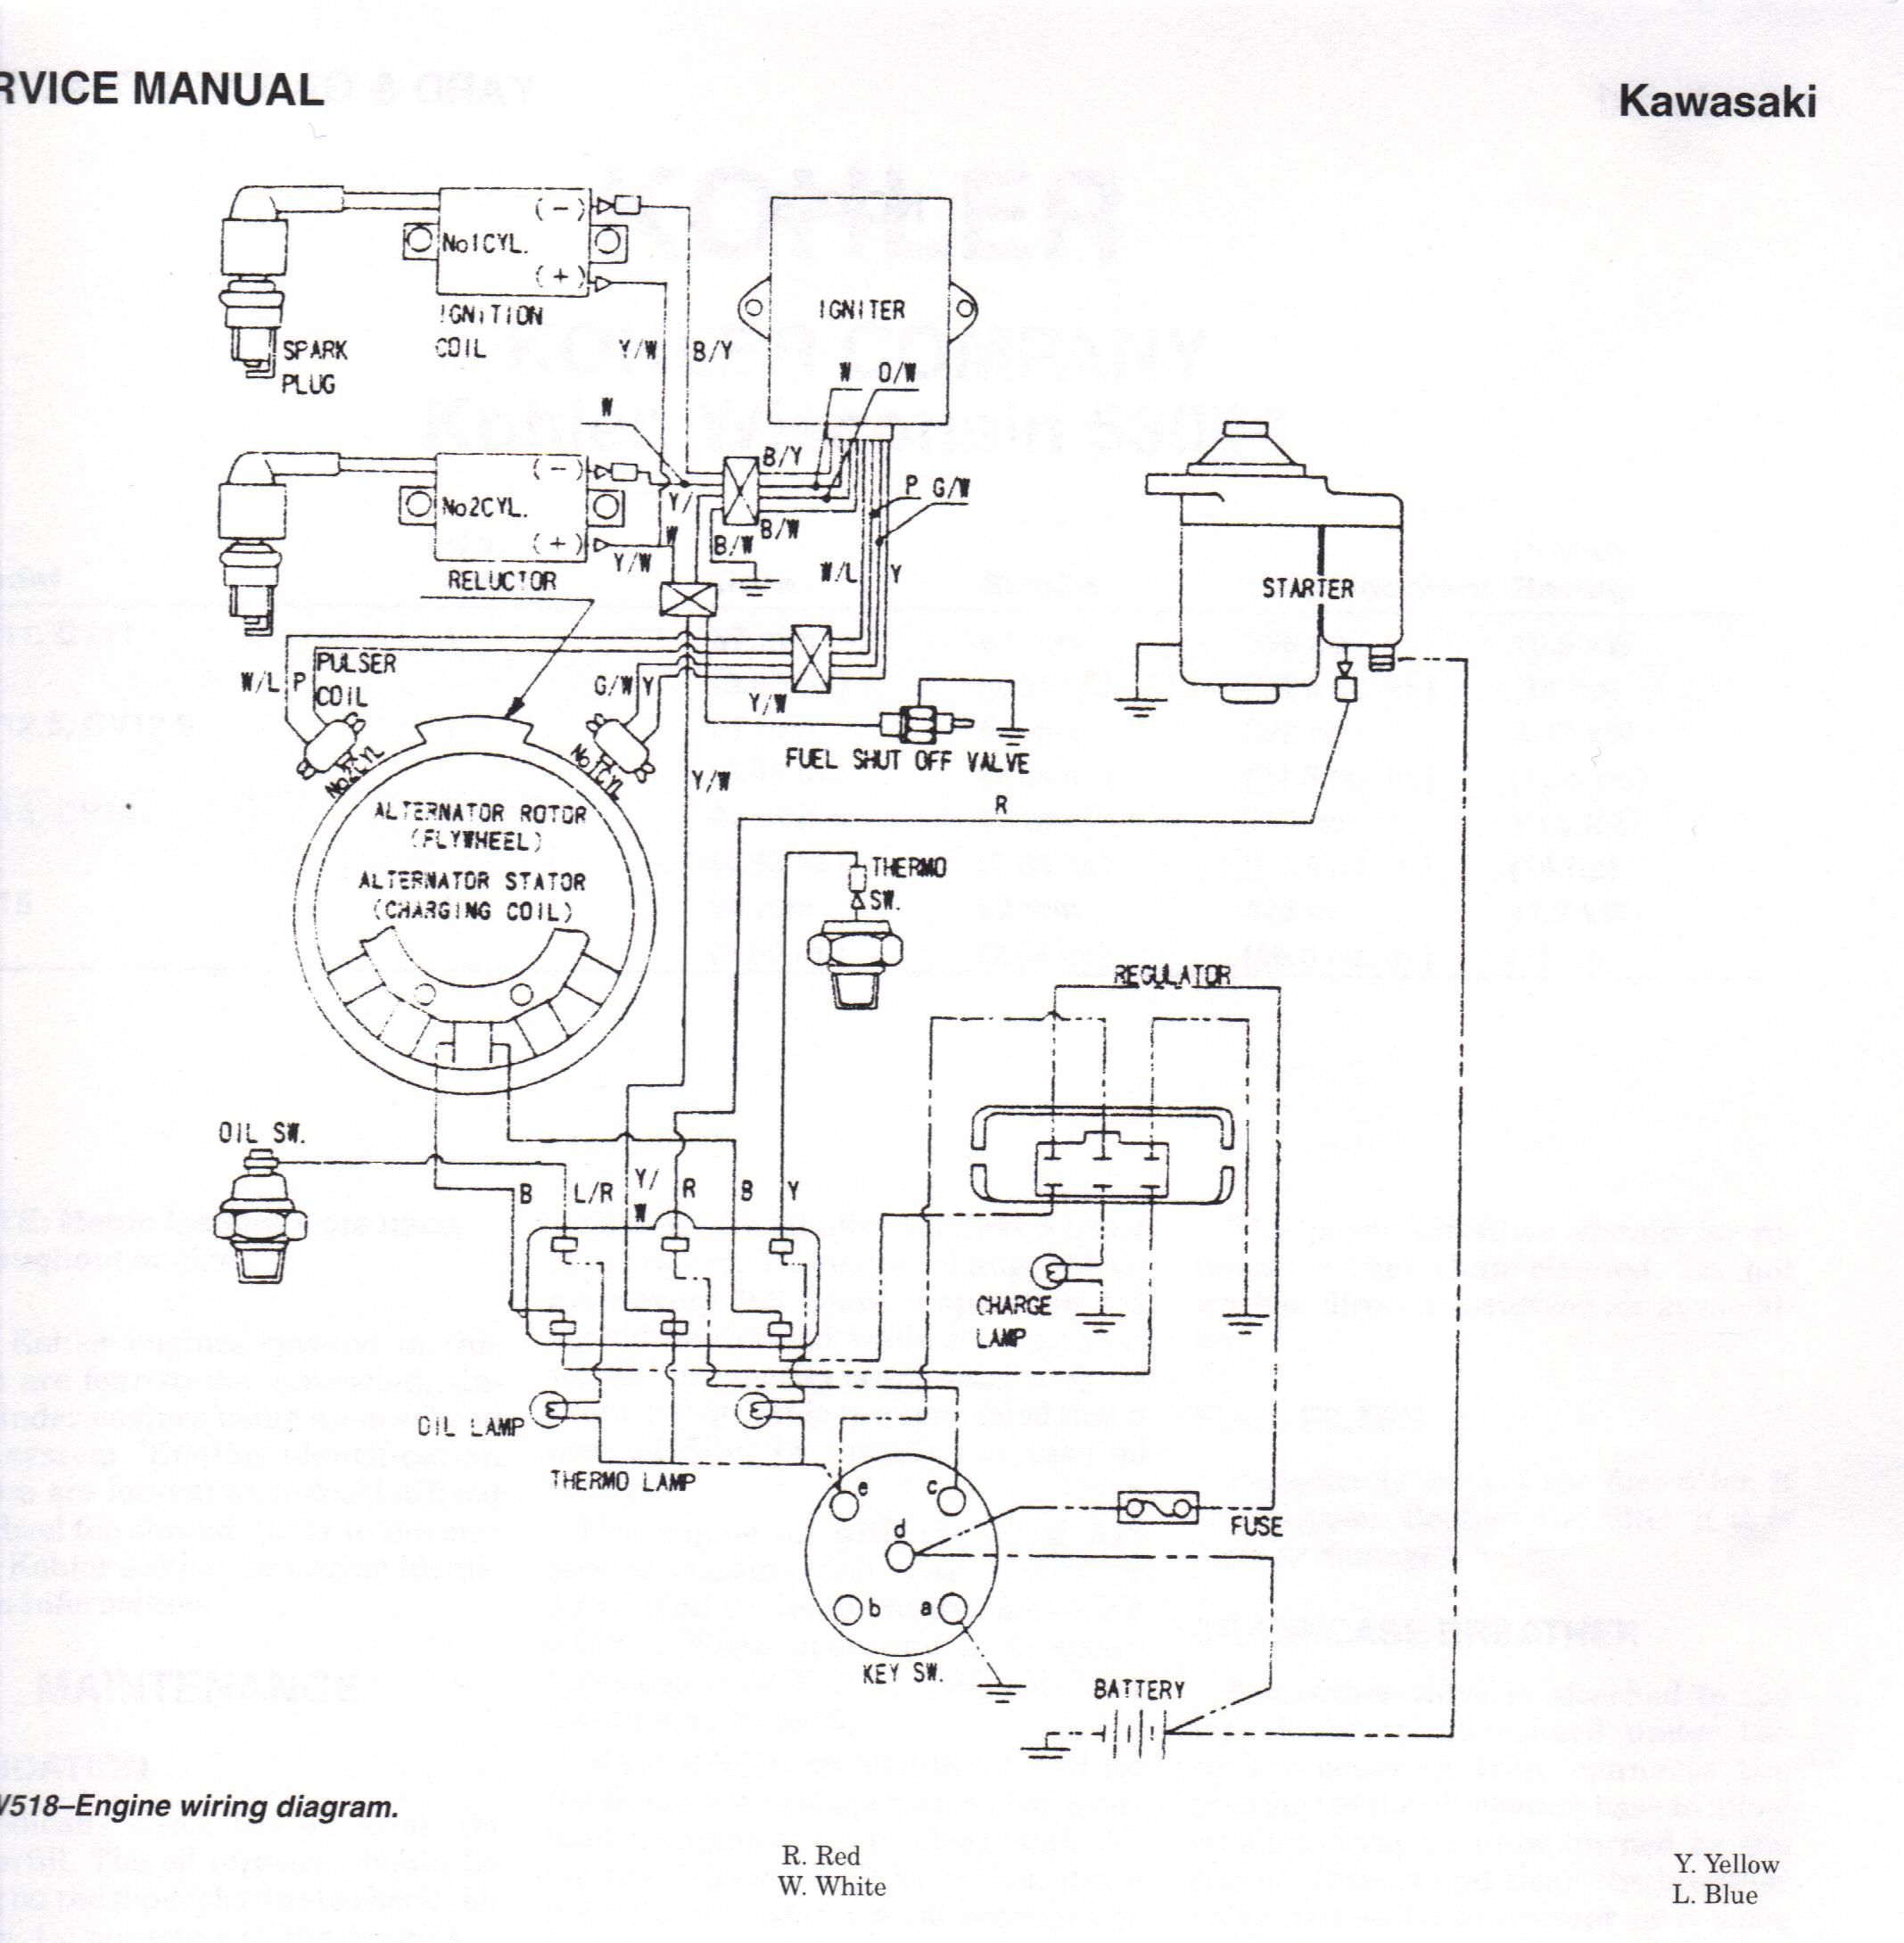 Xl350 Wiring Diagram Kawasaki Fdd Automotive 80 Kz650 Diagrams